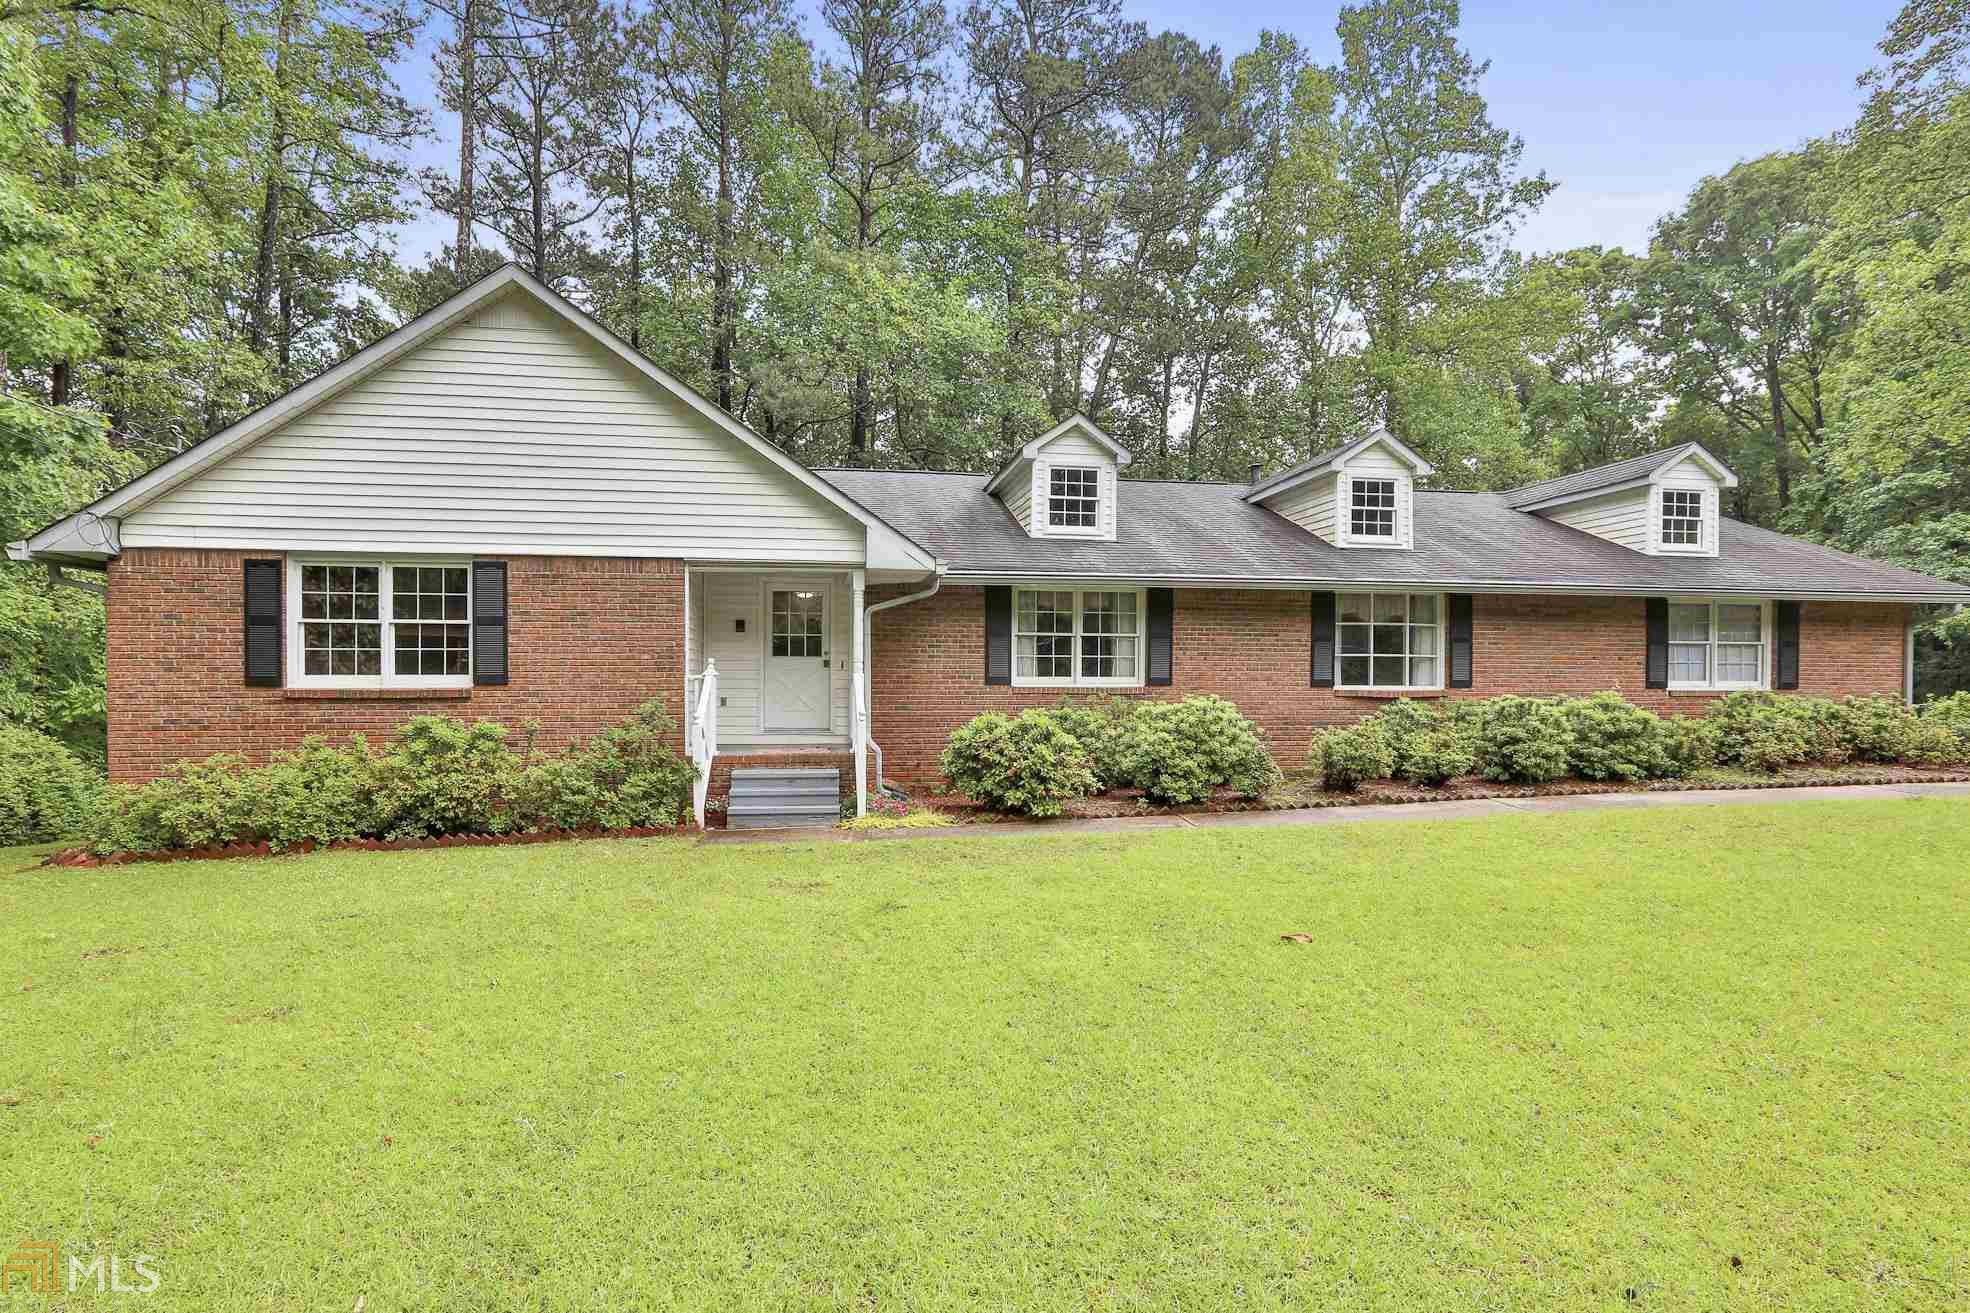 Image for property 6280 White Mill Rd, Fairburn, GA 30213